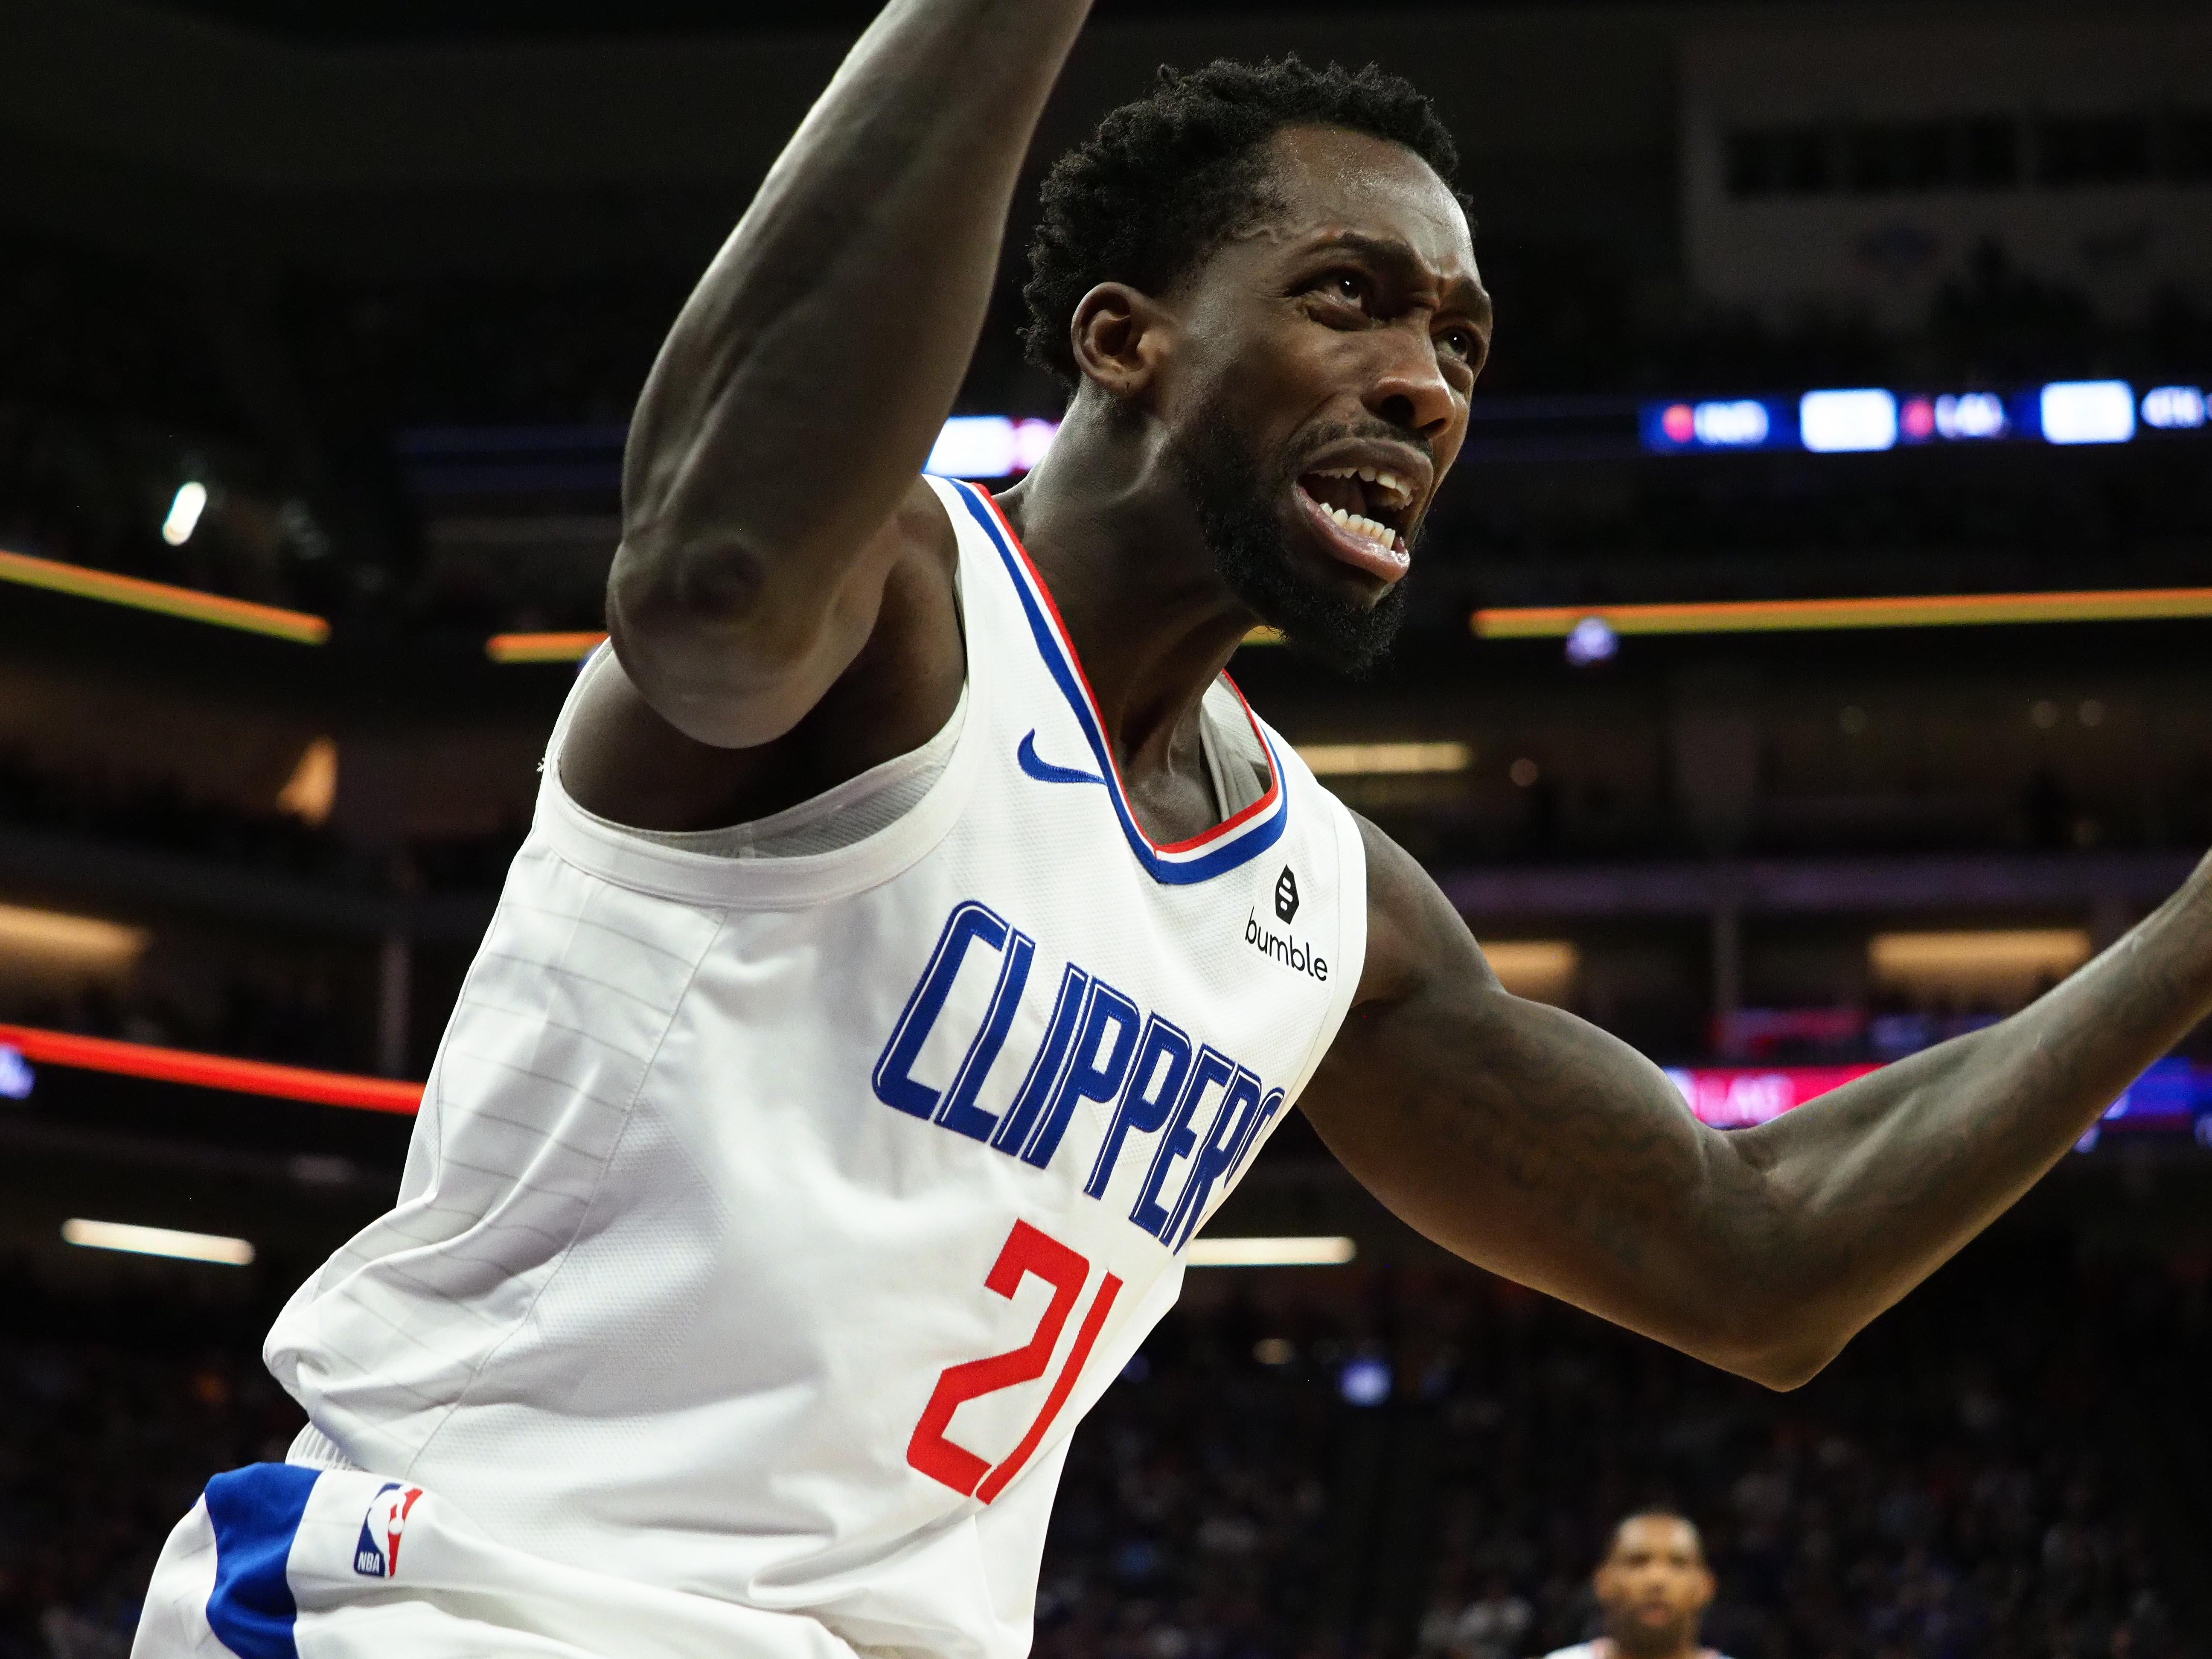 Patrick Beverley's First Career Ejection Stirs Up Controversy